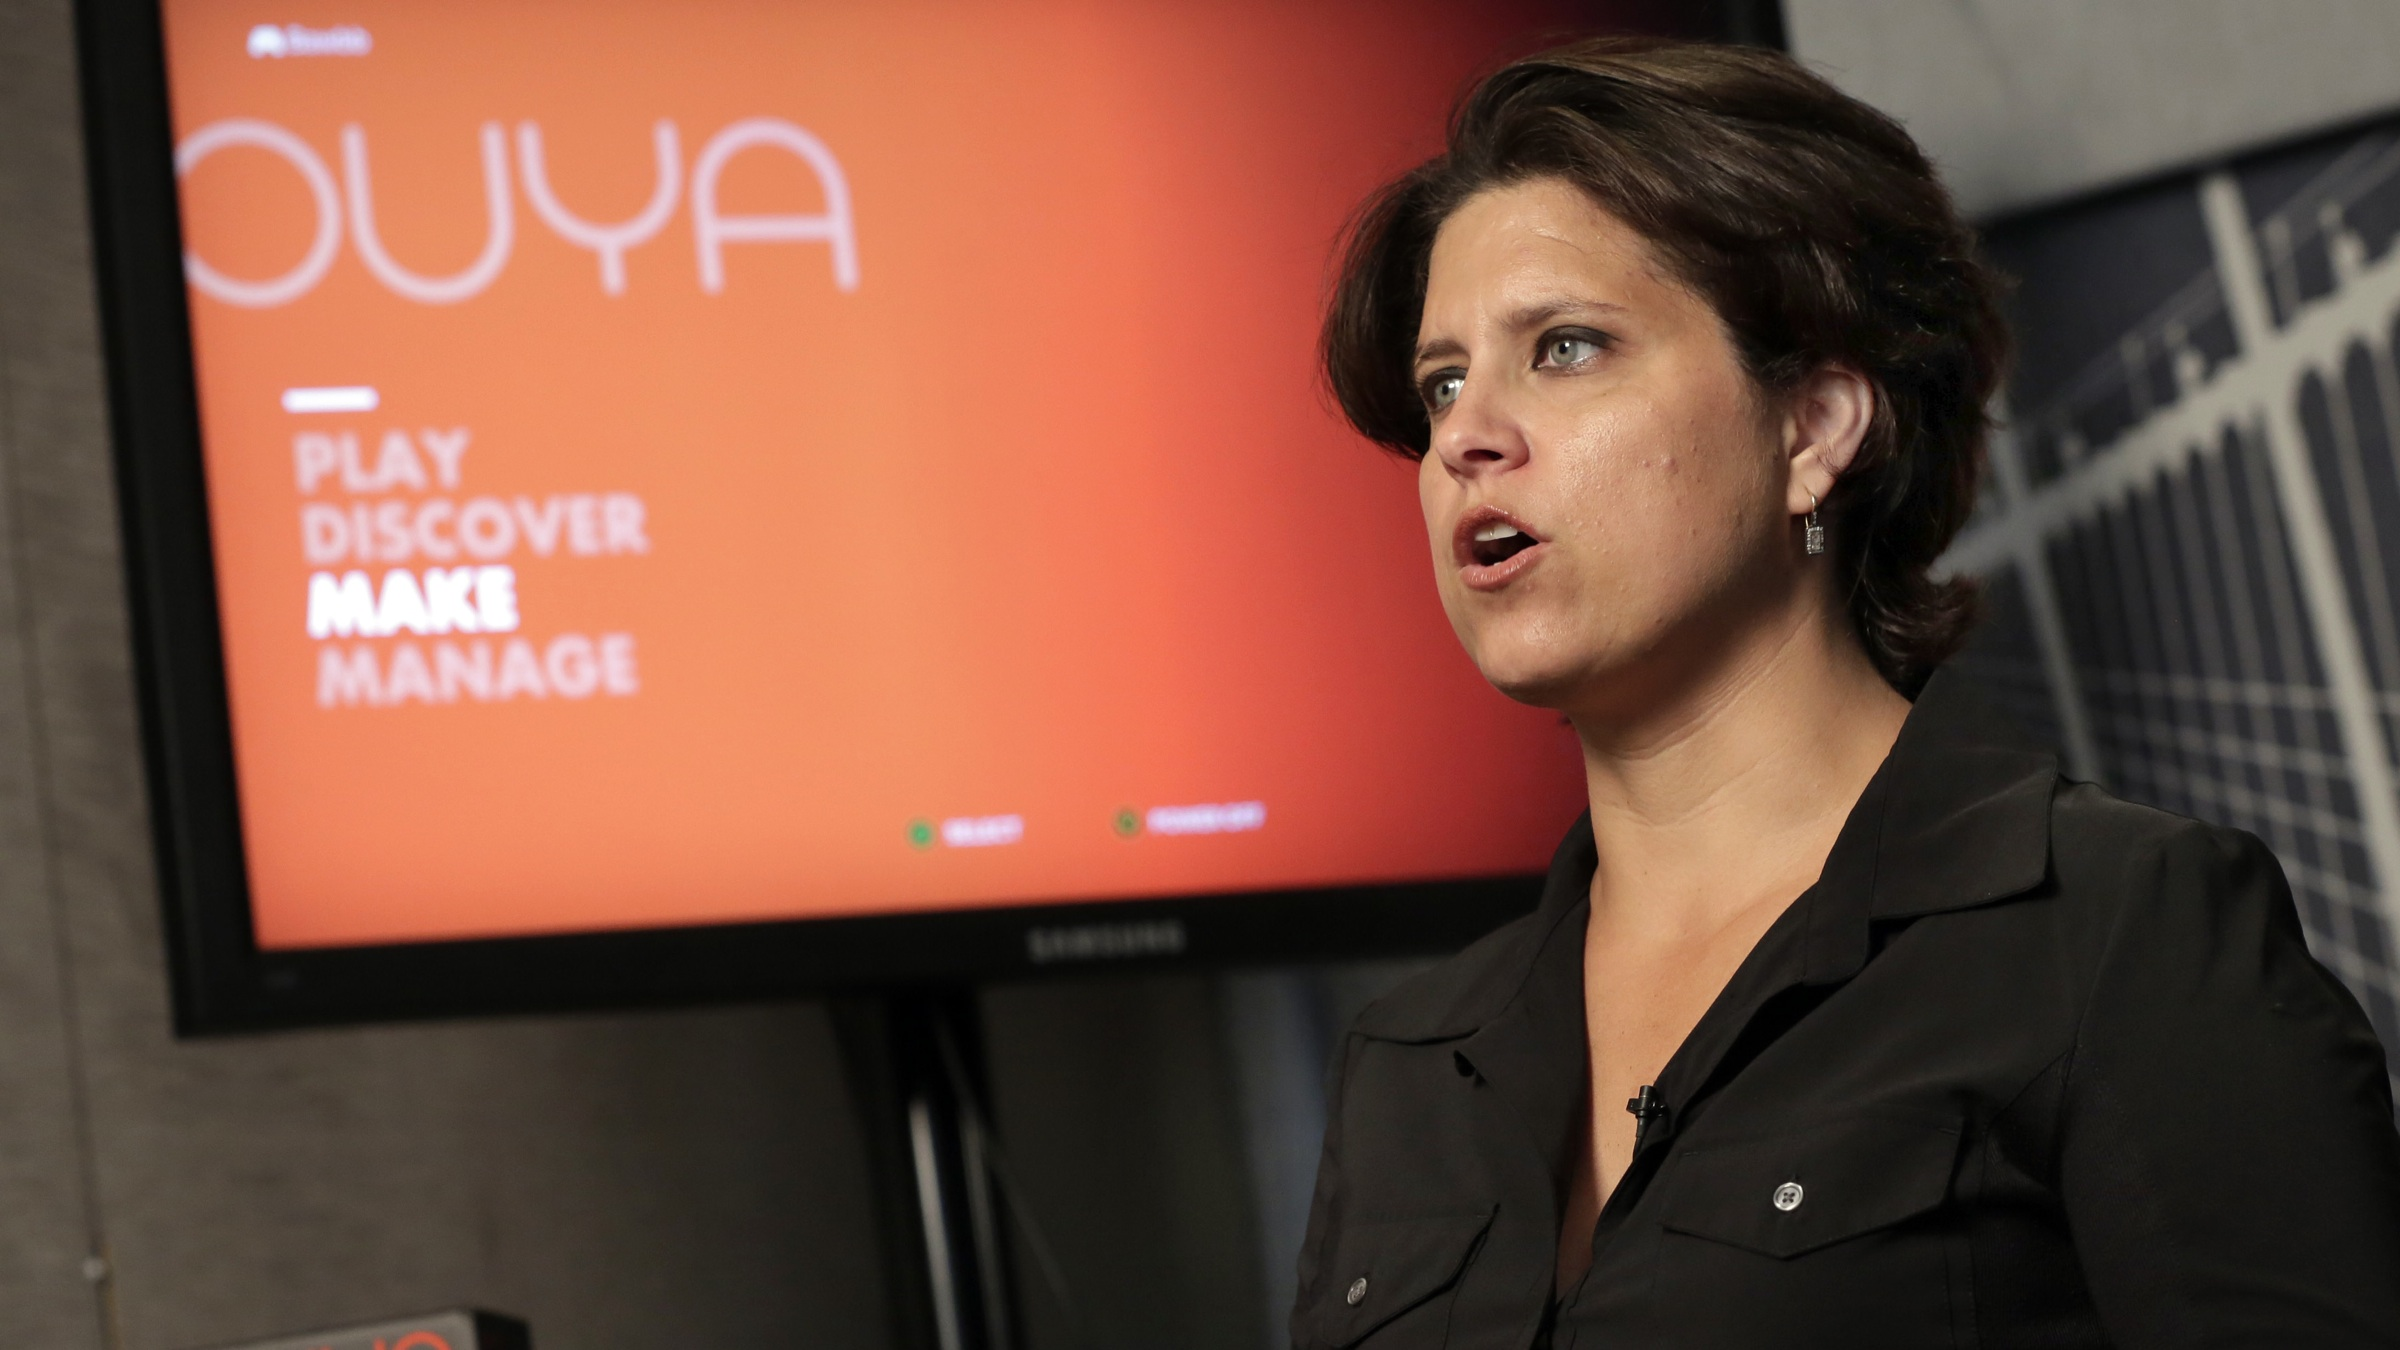 Julie Uhrman, chief executive of Android game console maker Ouya, is interviewed in New York, Tuesday, June 25, 2013.  Ouya, that went on sale Tuesday for $99, aims to challenge the dominance of the Xboxes, Nintendos and PlayStations of the world. The launch follows a successful funding campaign through the group-fundraising site Kickstarter, but it's unclear whether the console will enjoy broader success. (AP Photo/Richard Drew)